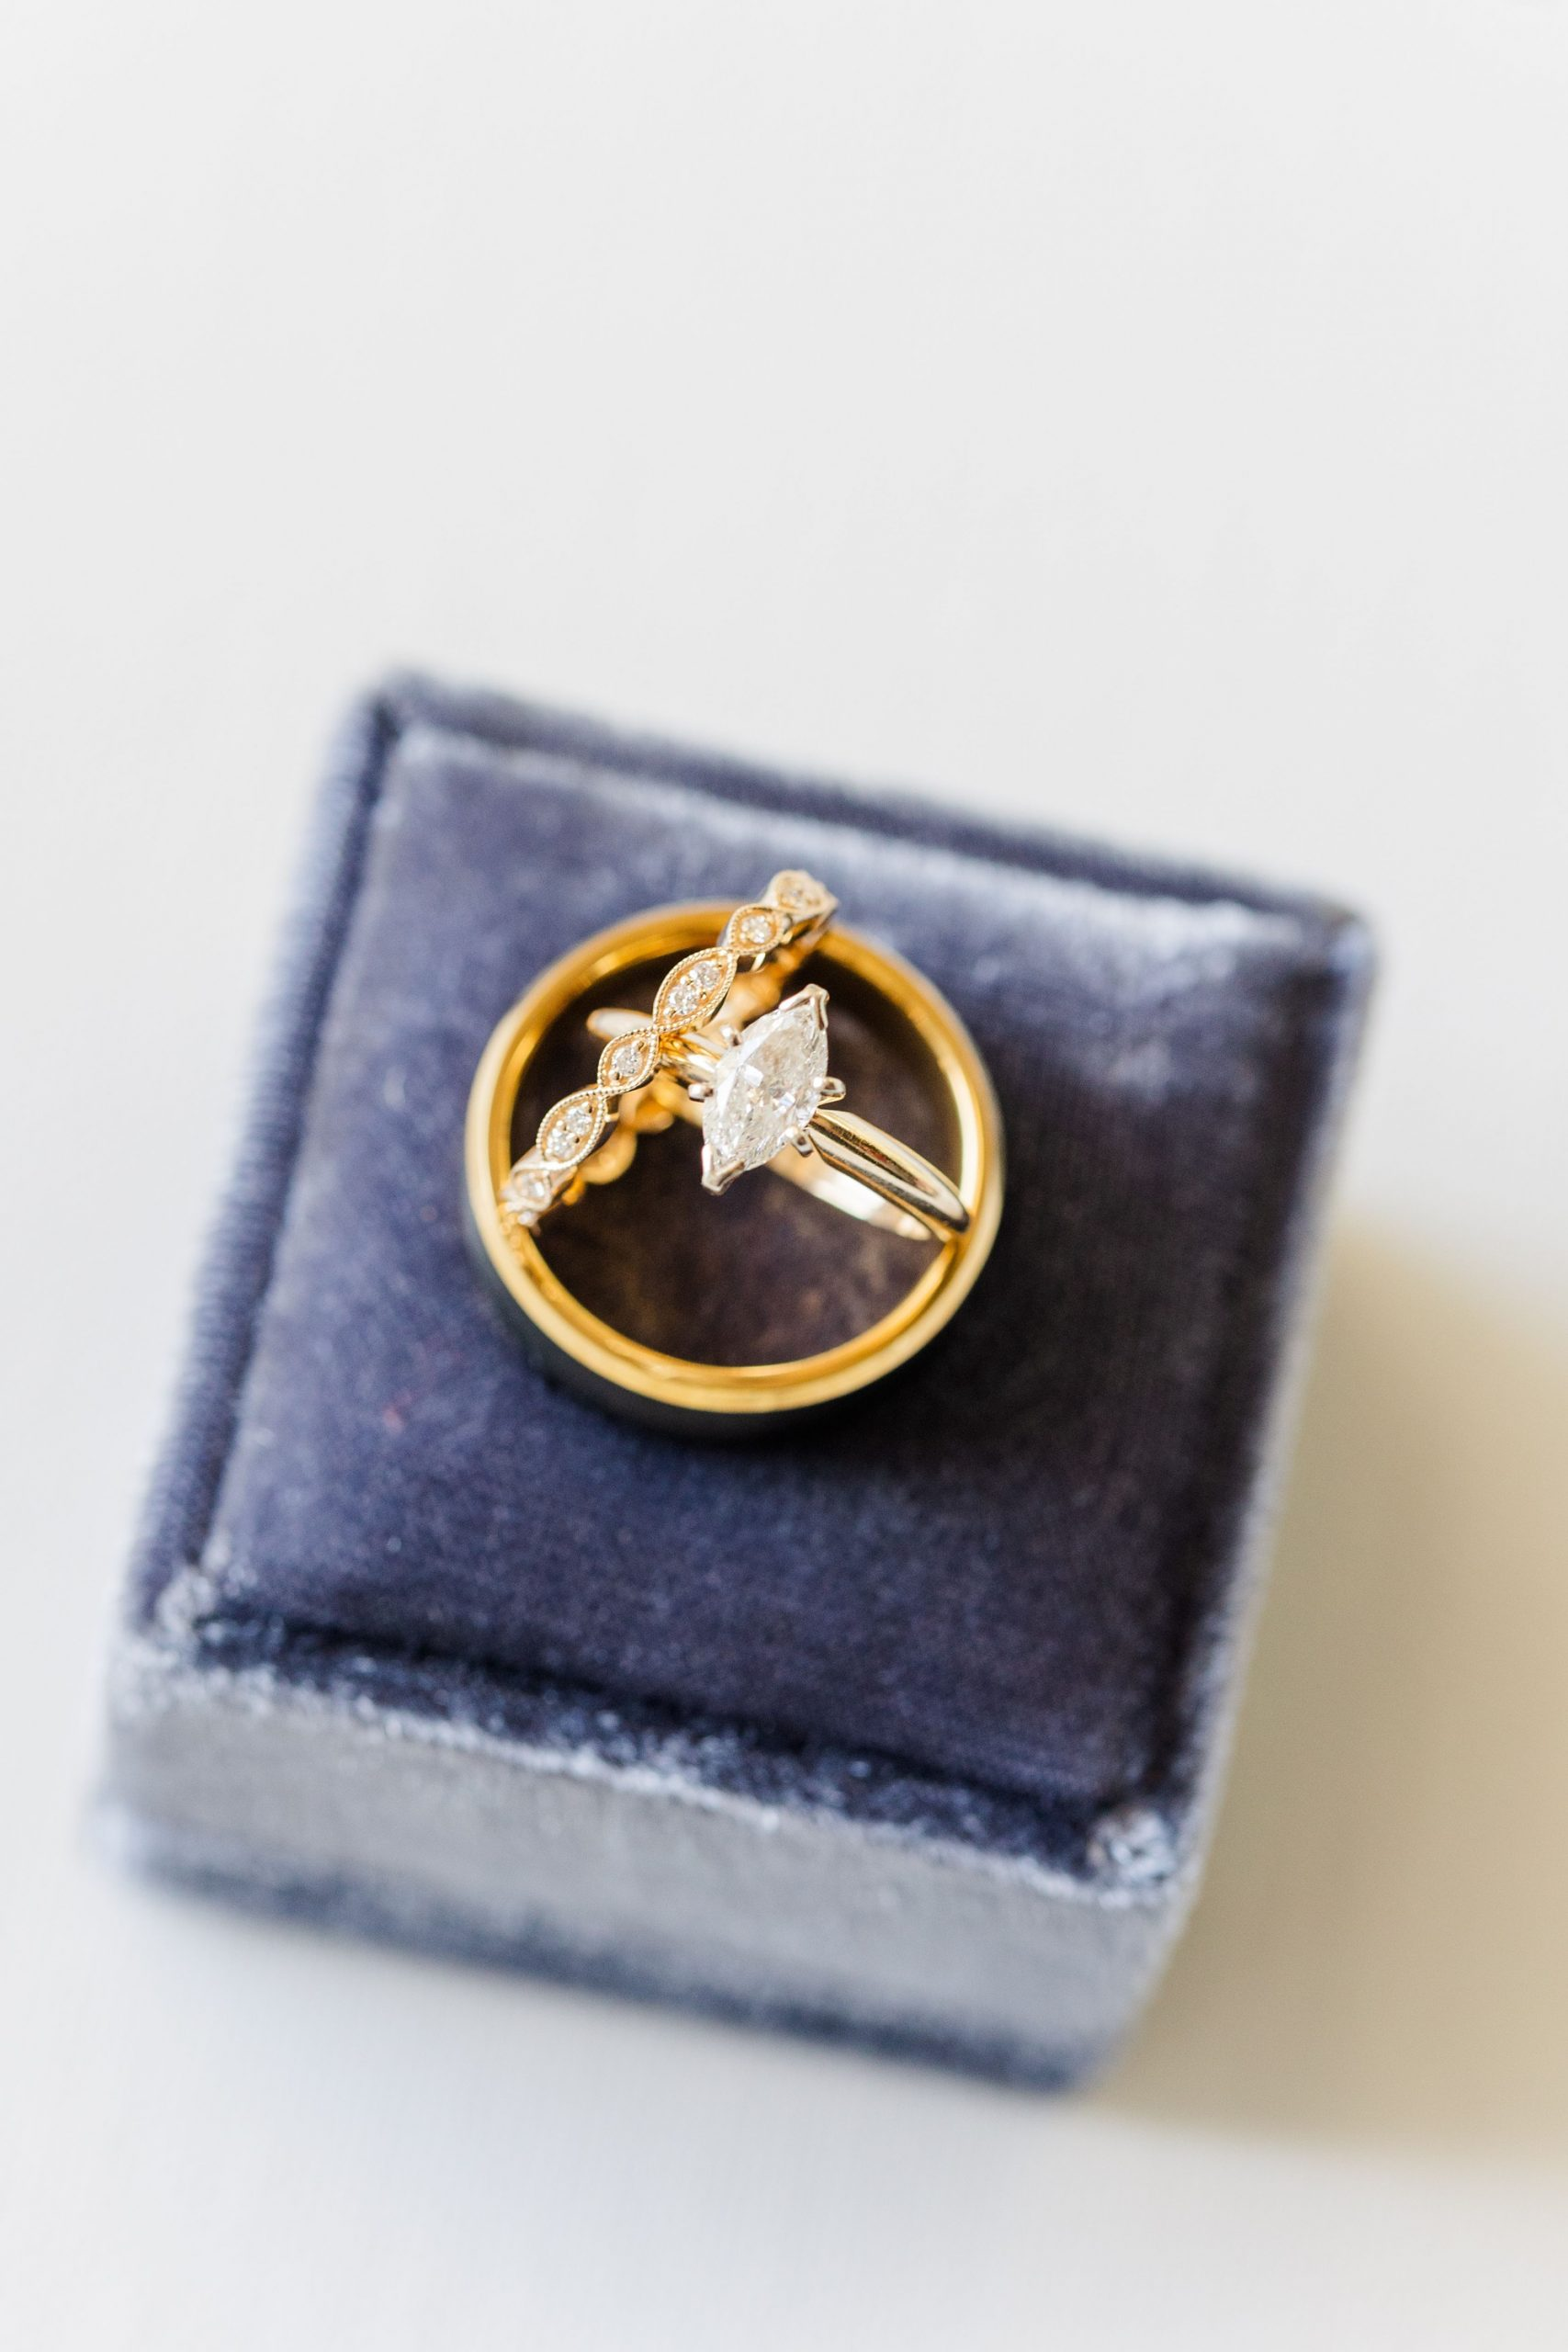 bride's wedding rings rest on pale blue ring box